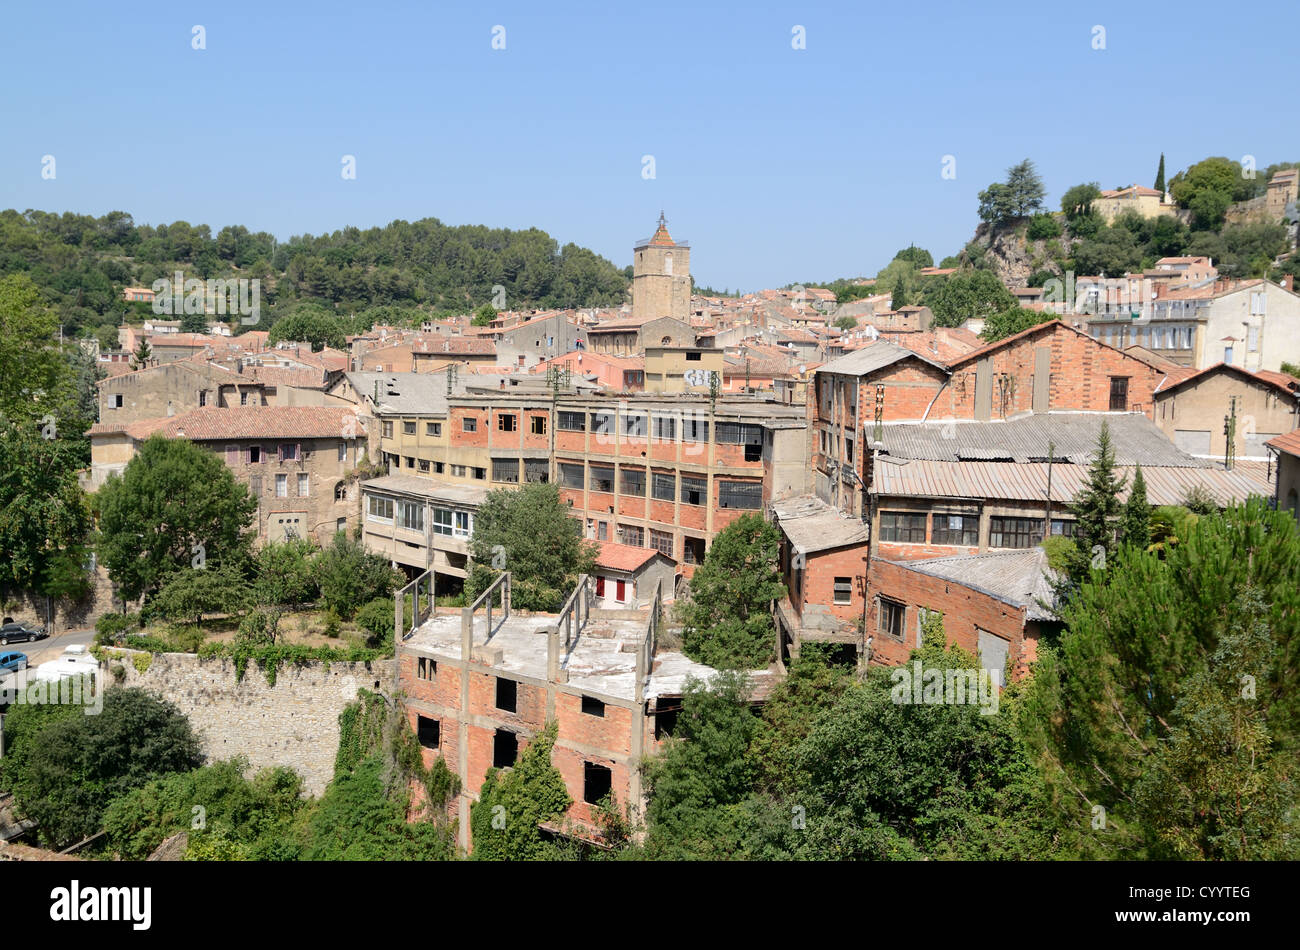 Abandoned Leather factory or Leather Factories at Barjols Var Provence France - Stock Image